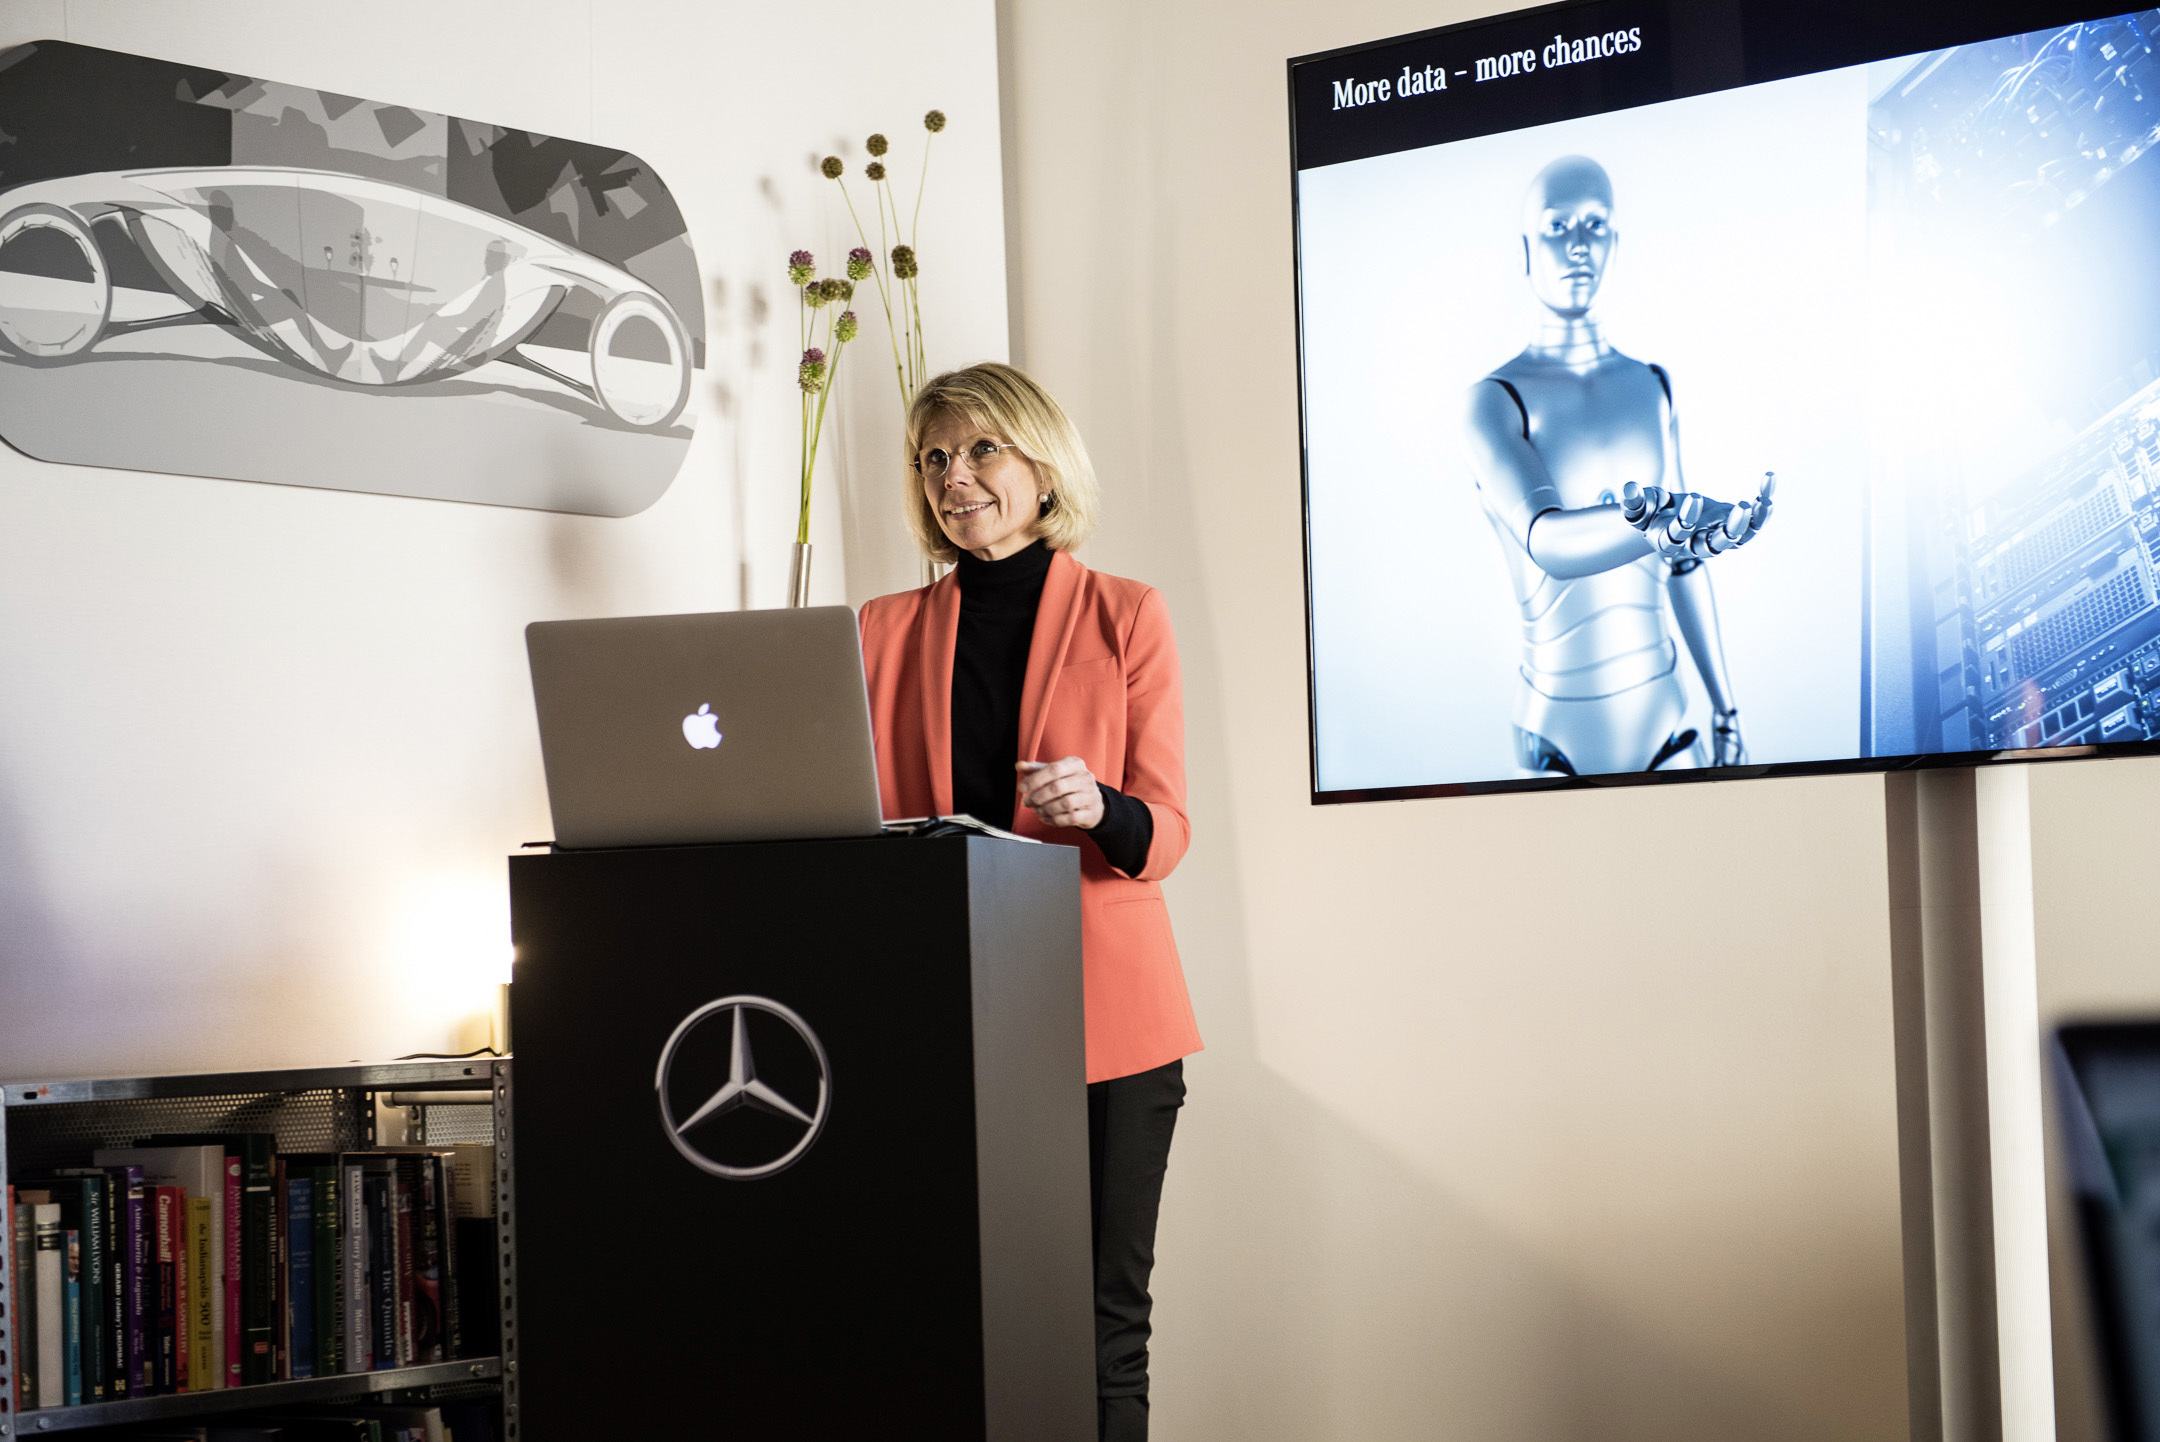 Anke Kleinschmit, head of Daimler research